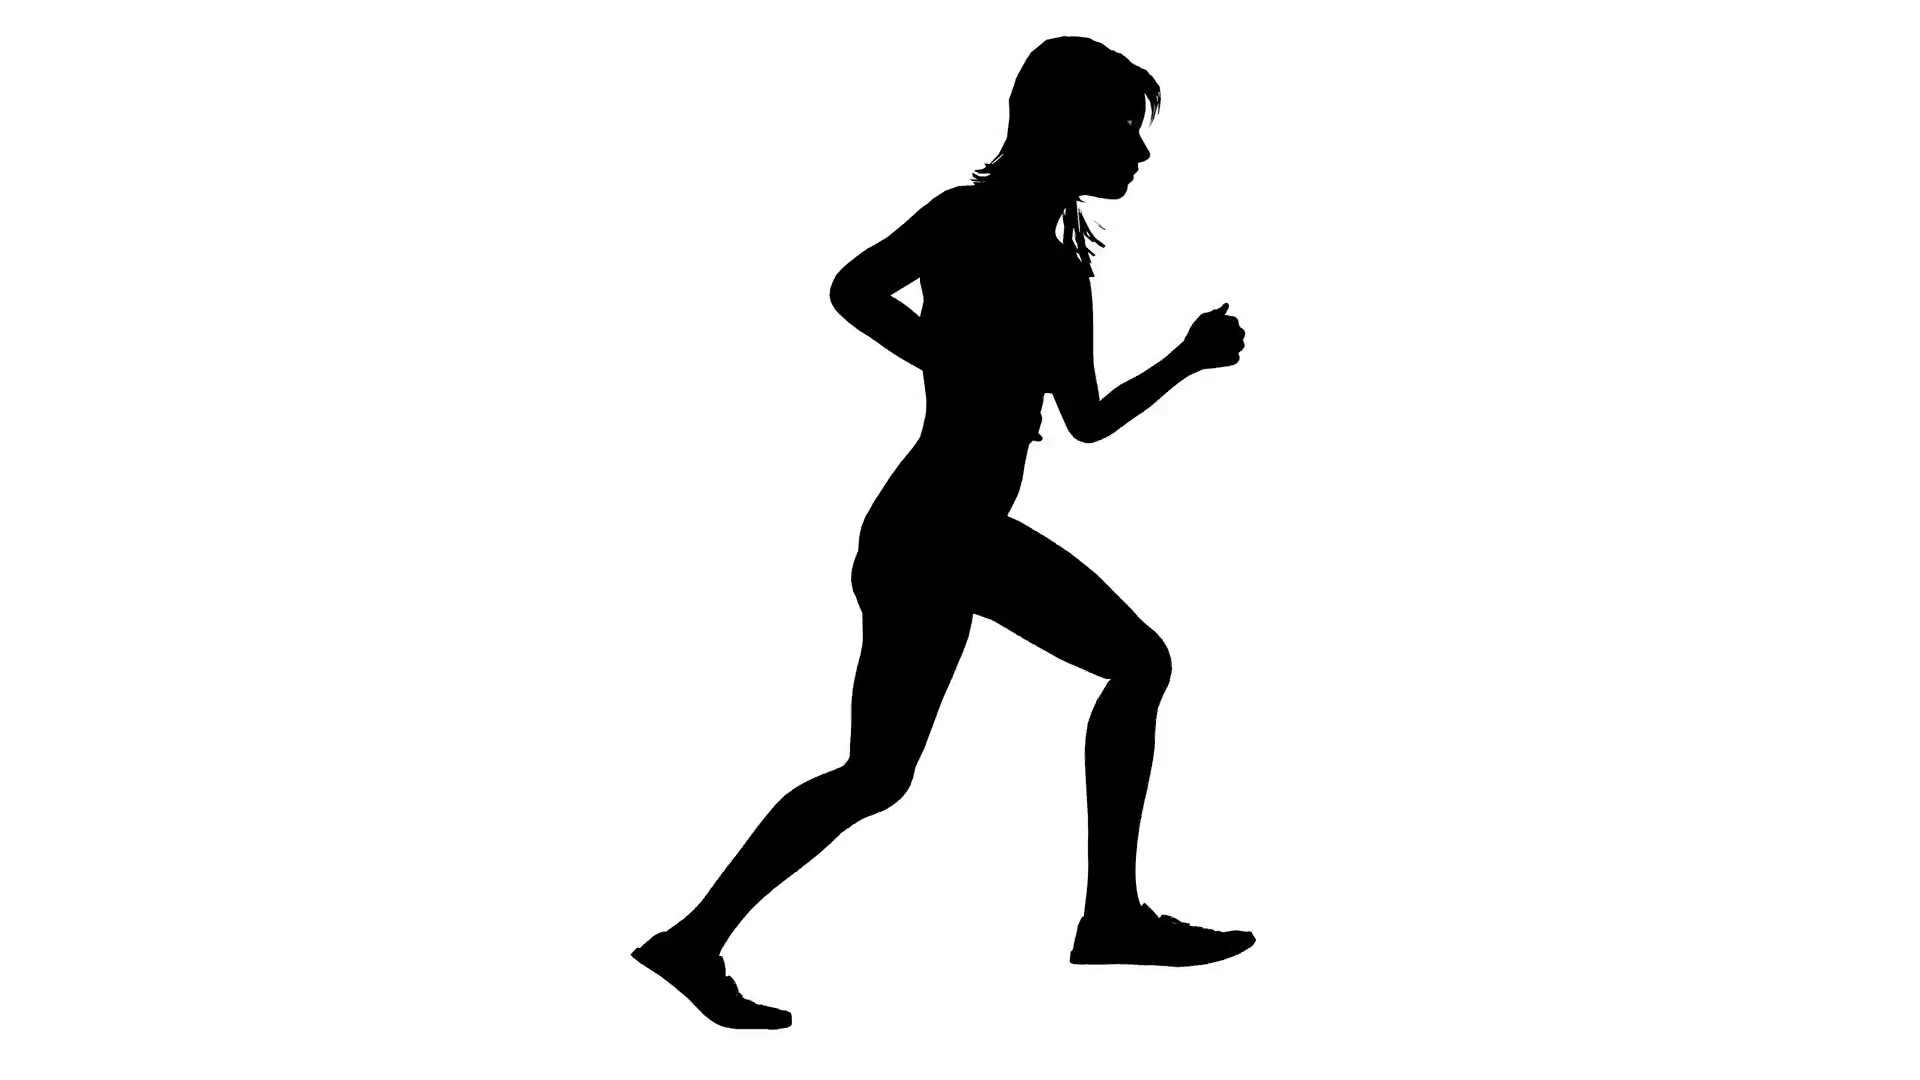 Running Person Silhouette